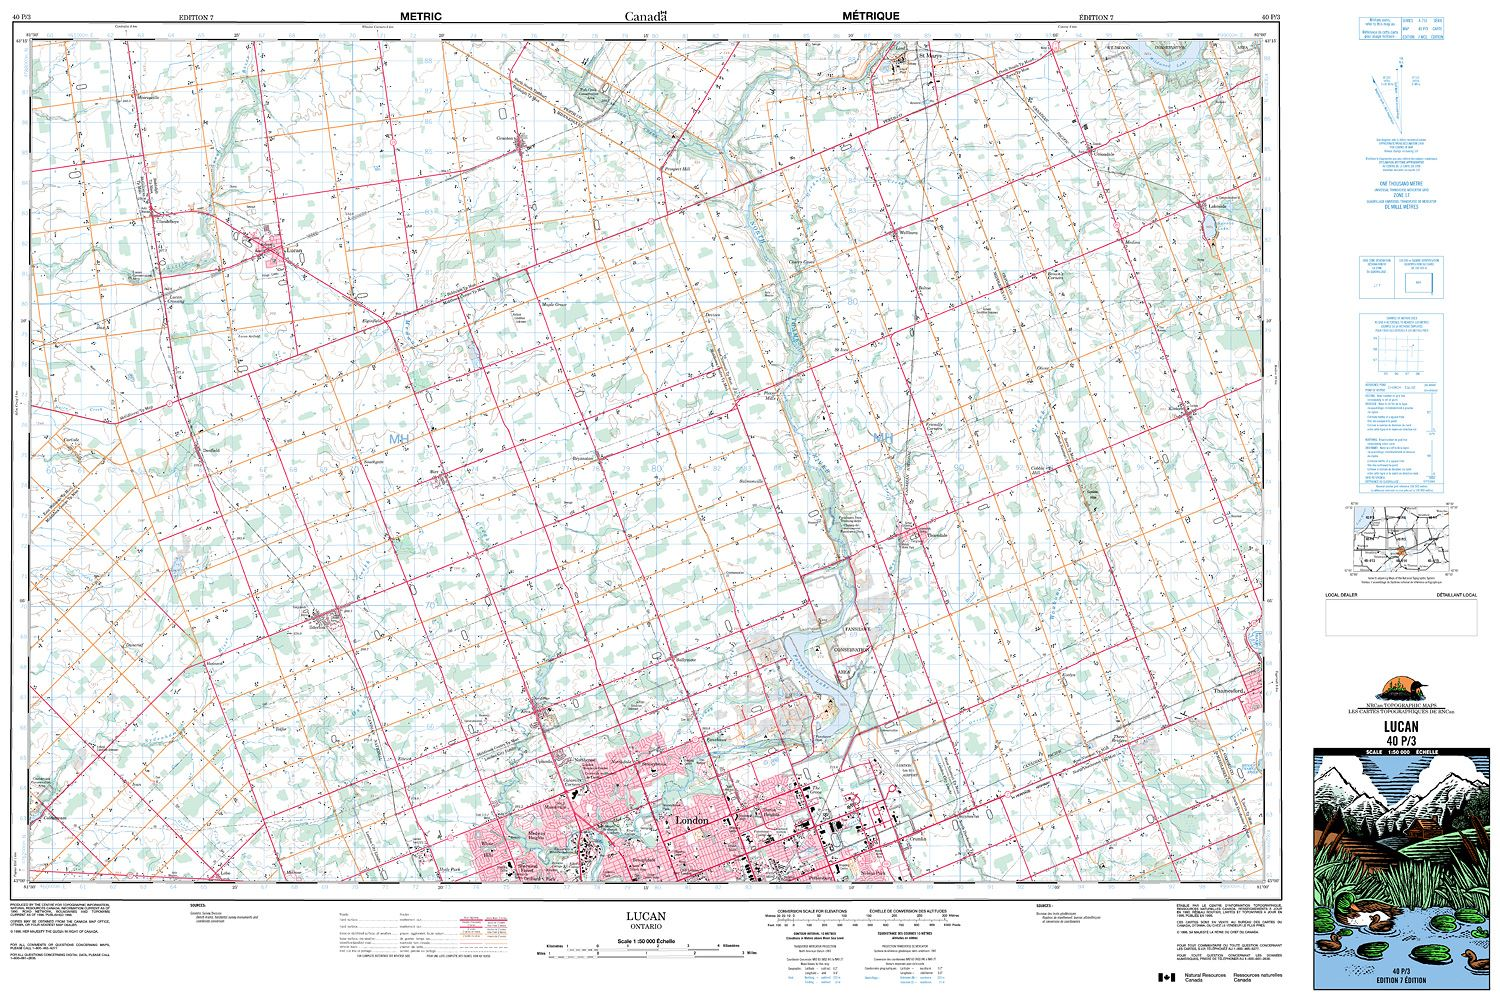 Ontario Topographic Map.040p03 Lucan Topographic Map